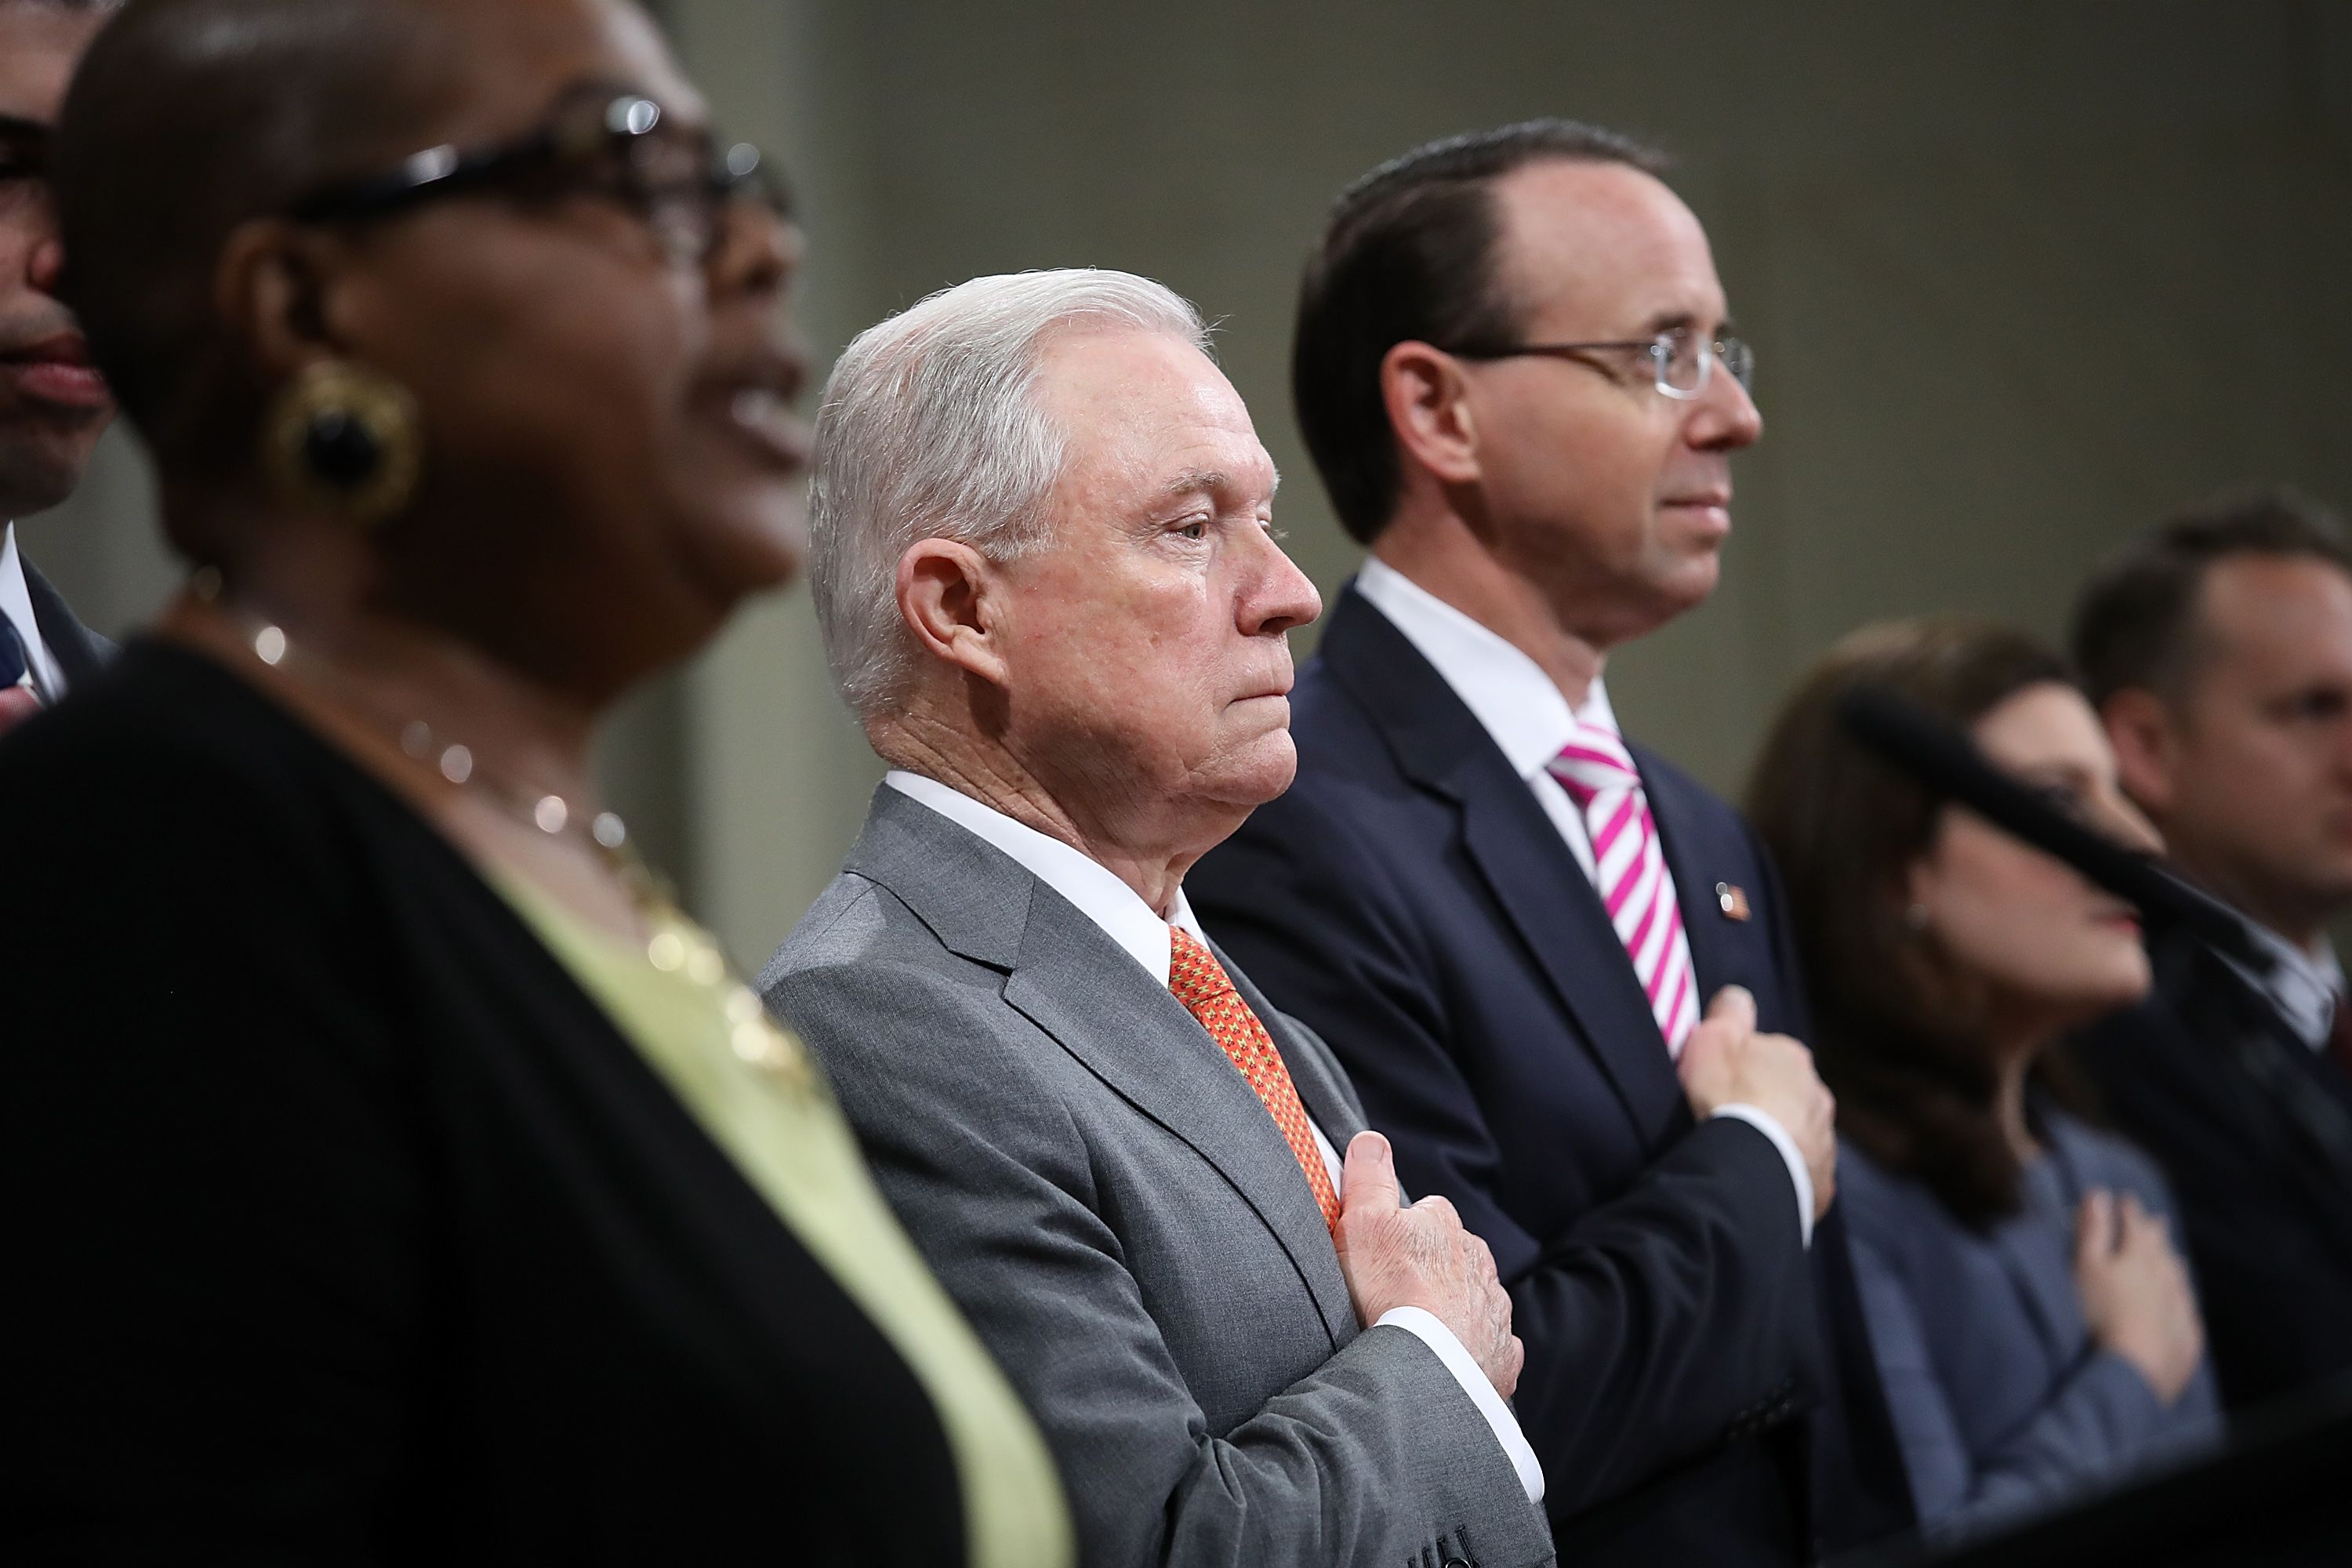 Jeff Sessions: 'Dangerous Movement' Eroding Americans' Religious Liberty